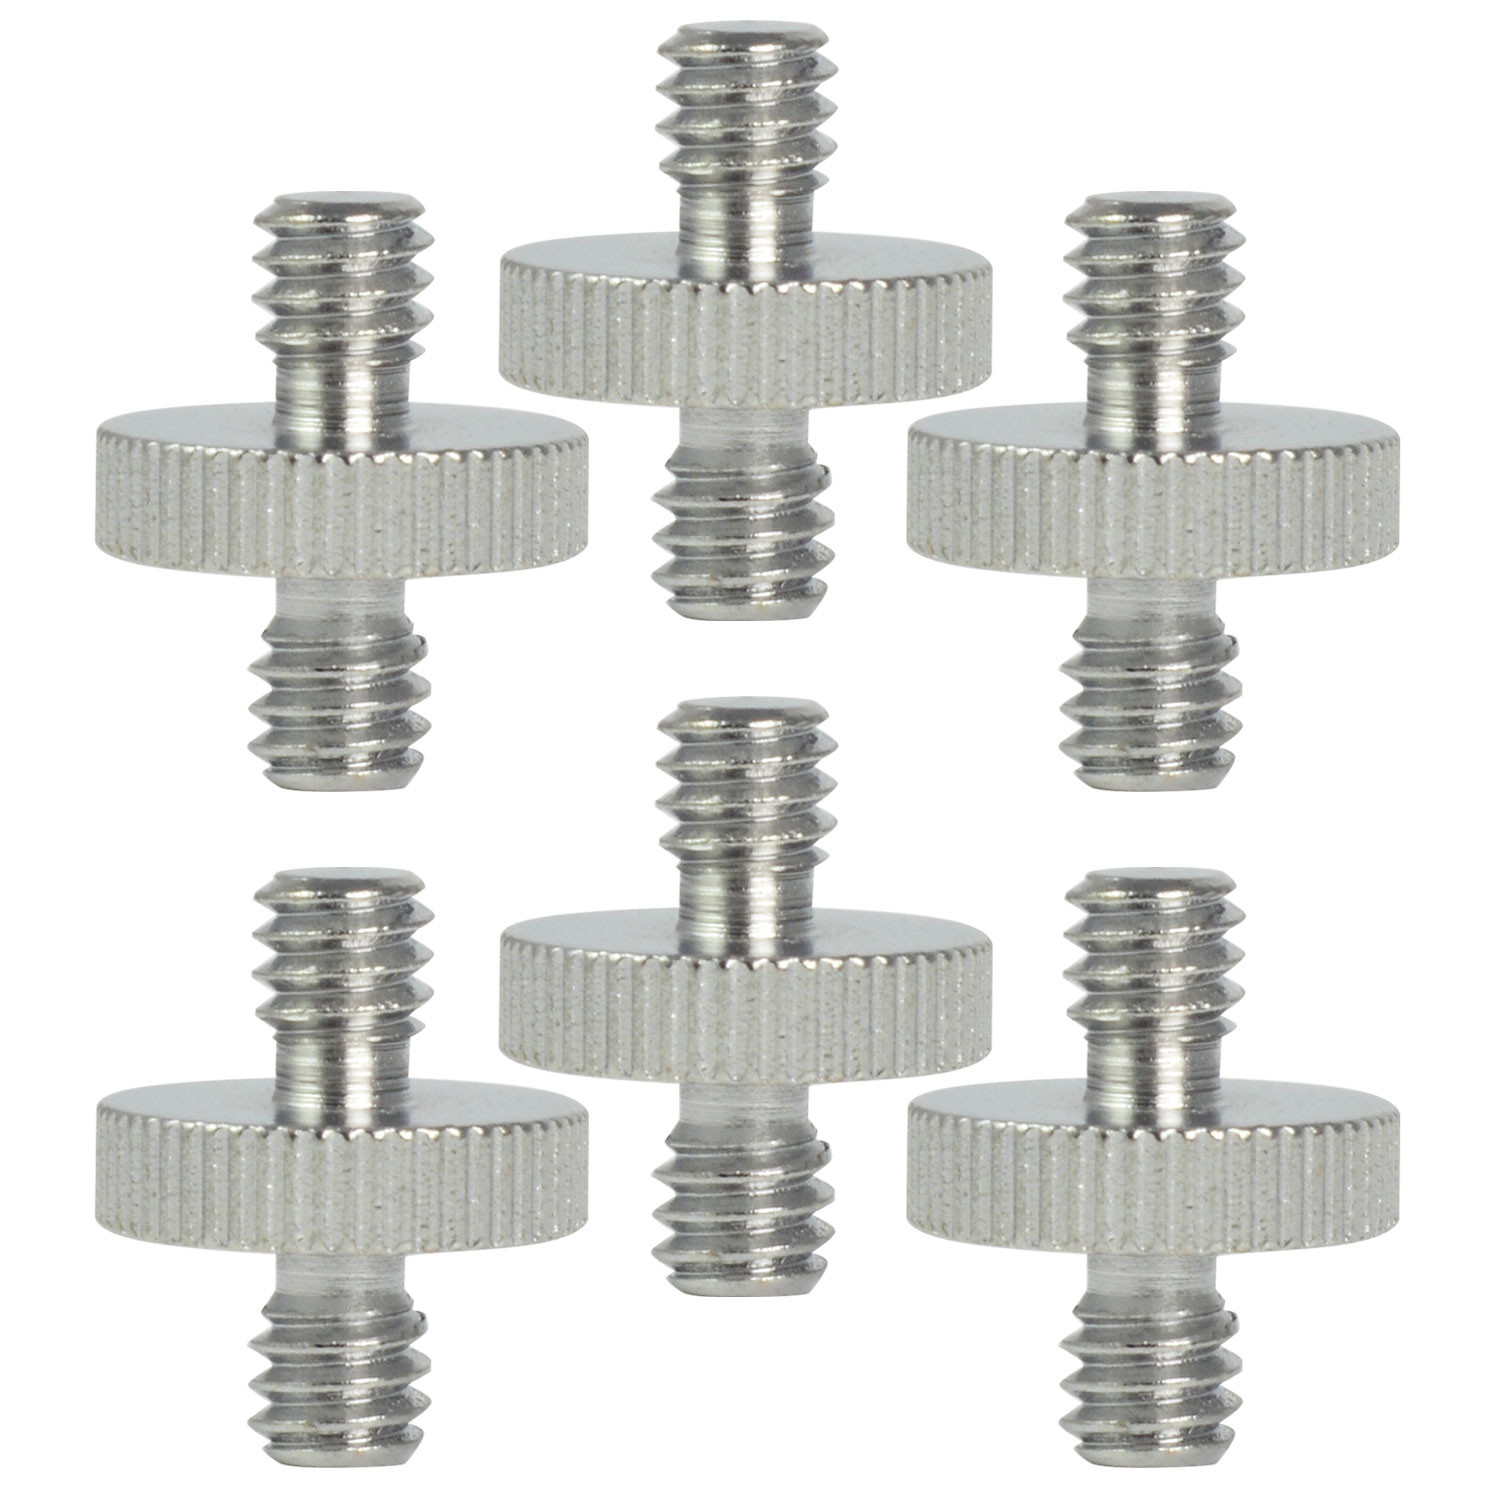 "MENGS® 6Pcs SR-03 1/4"" to 1/4"" Male Threaded Steel Screw Adapter (Ø16mm x H20mm) for Tripod Monopod Quick Release Plate Camera"